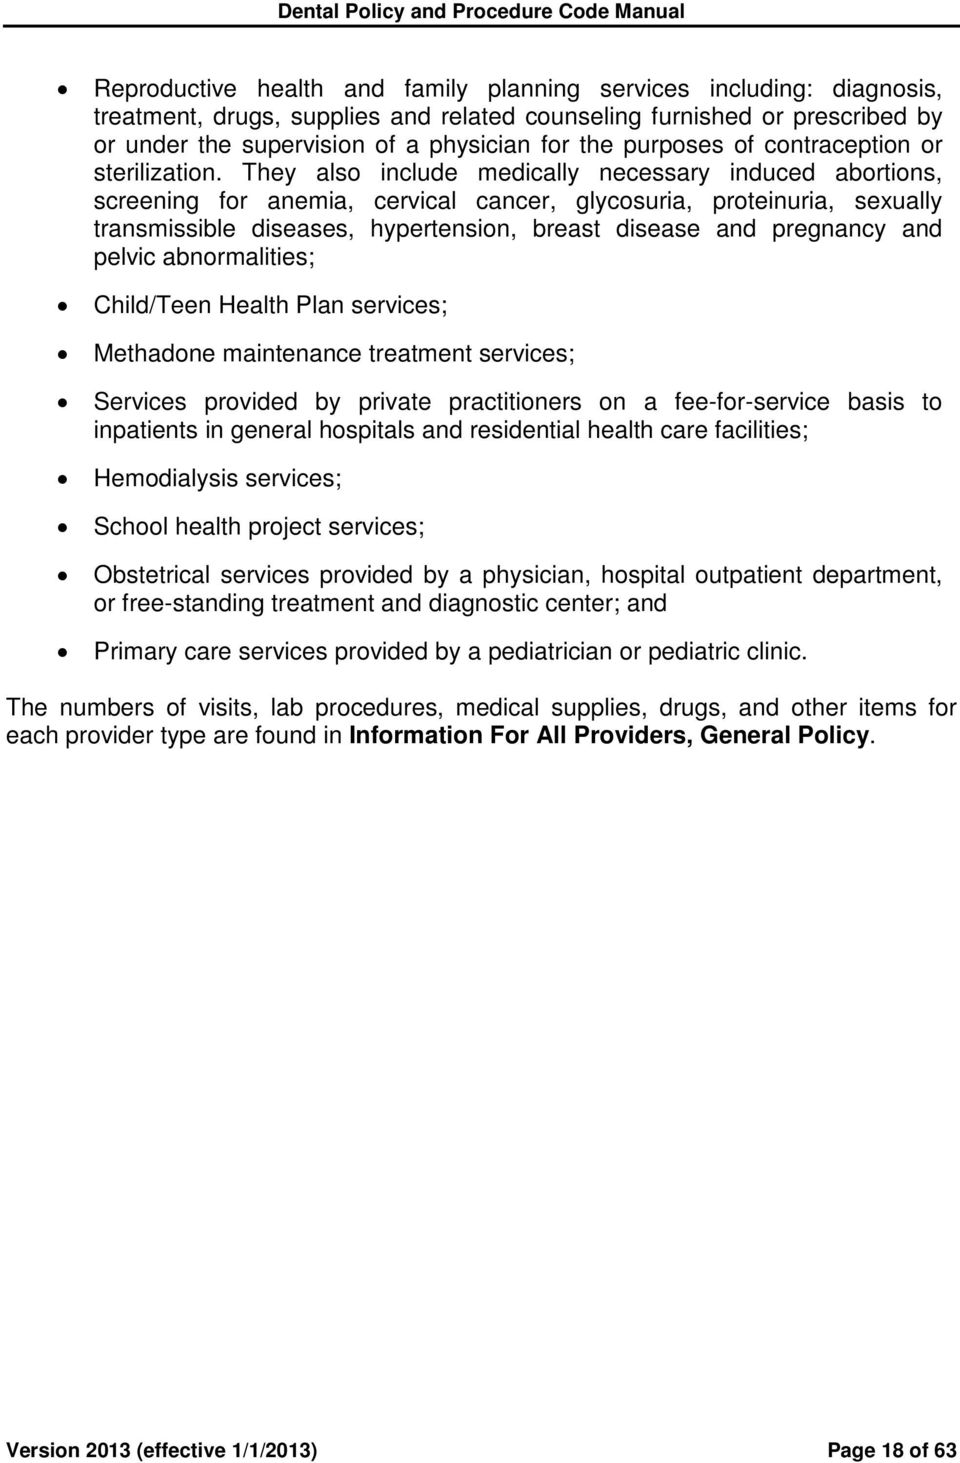 NEW YORK STATE MEDICAID PROGRAM DENTAL POLICY AND PROCEDURE CODE